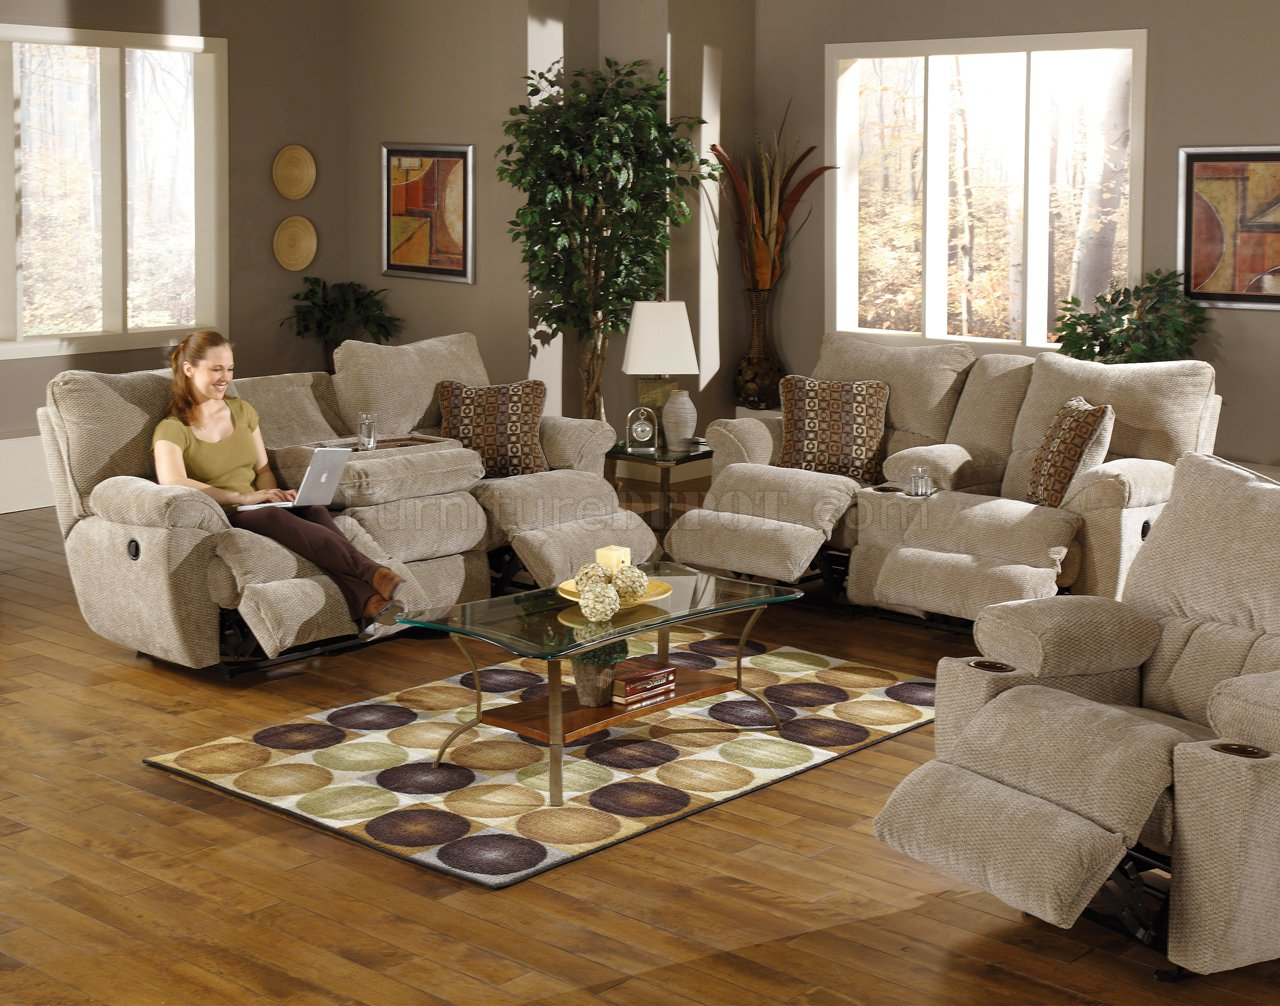 Modern reclining sofa and loveseat sable/earth fabric madison reclining sofa u0026 loveseat set gbpkzsh